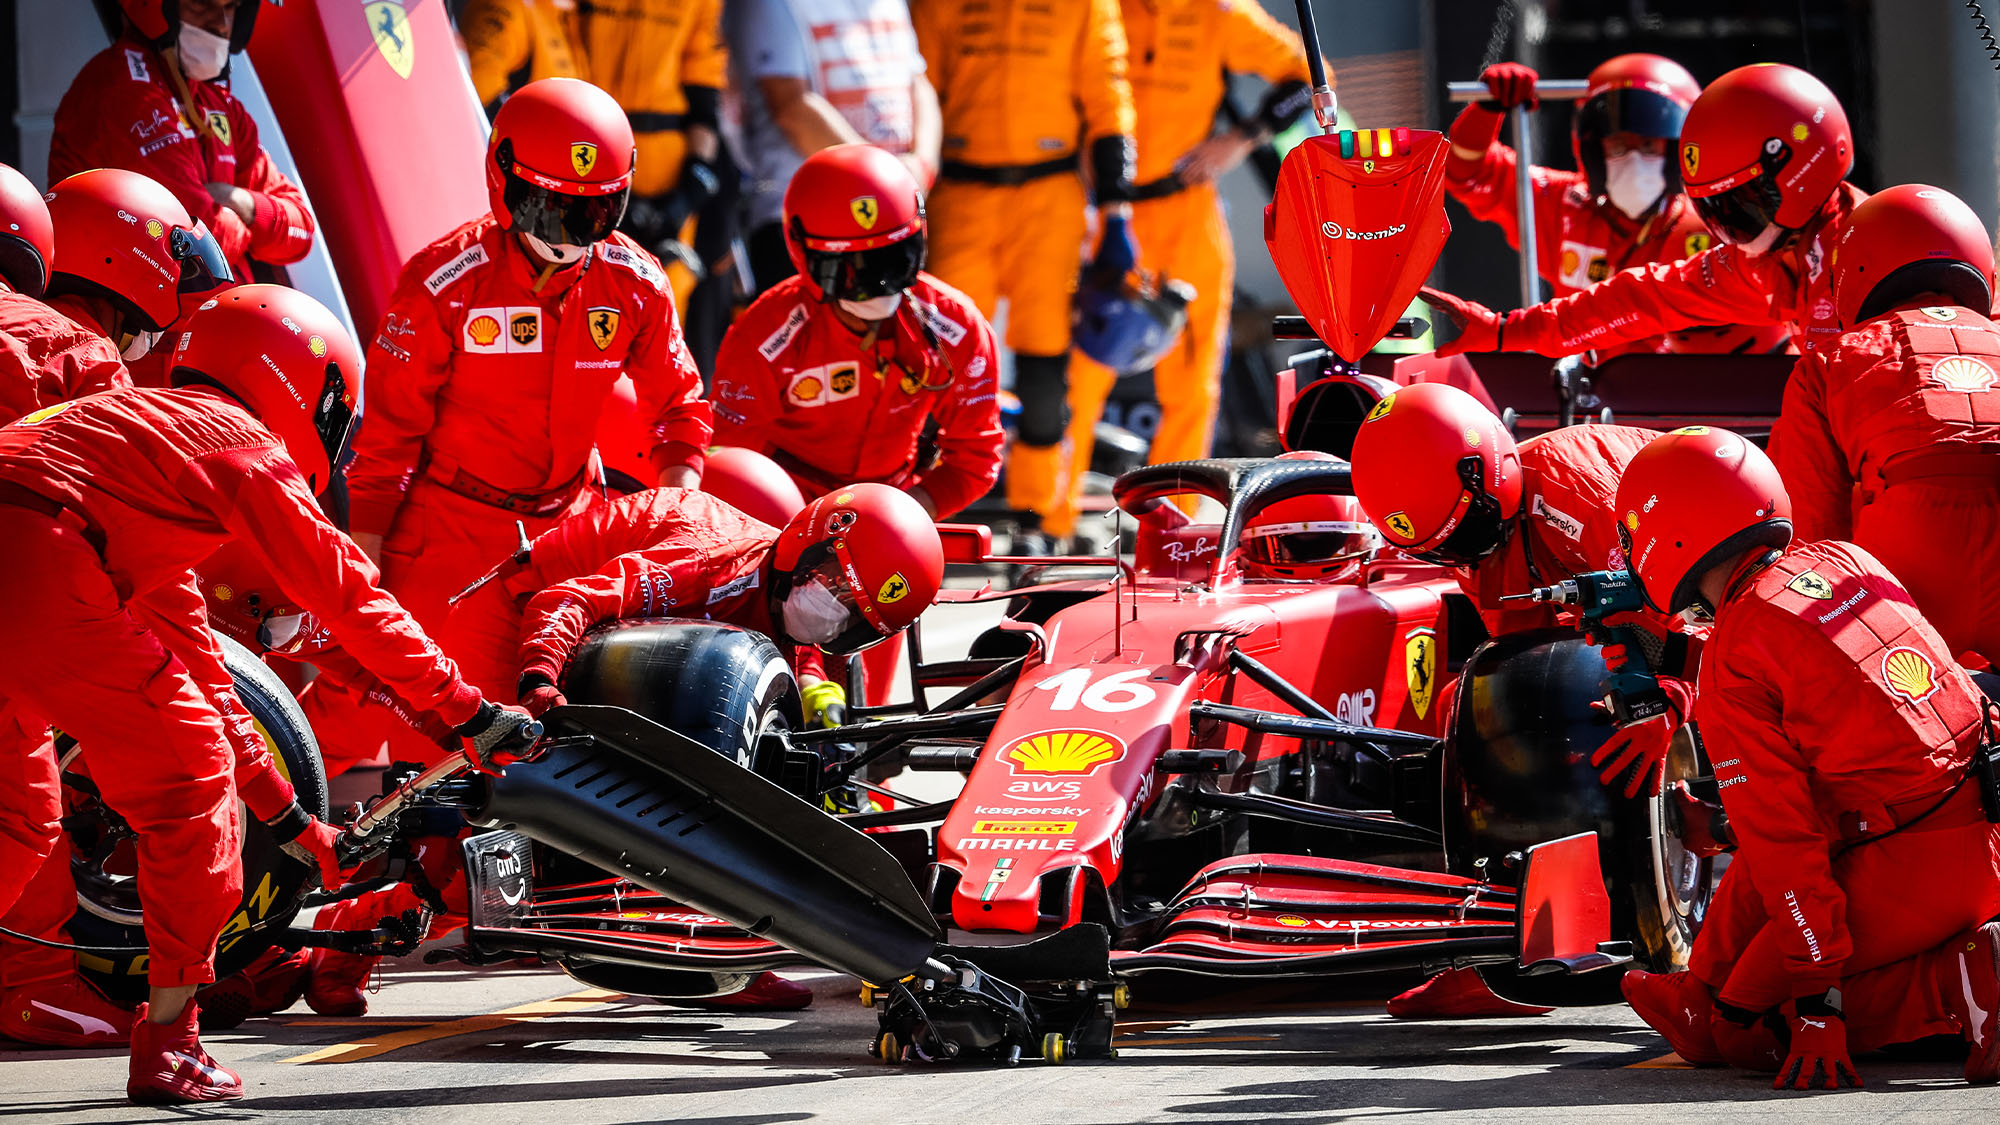 pit stop 16 LECLERC Charles (mco), Scuderia Ferrari SF21, action during the Formula 1 Pirelli British Grand Prix 2021, 10th round of the 2021 FIA Formula One World Championship from July 16 to 18, 2021 on the Silverstone Circuit, in Silverstone, United Kingdom - Photo Antonin Vincent / DPPI